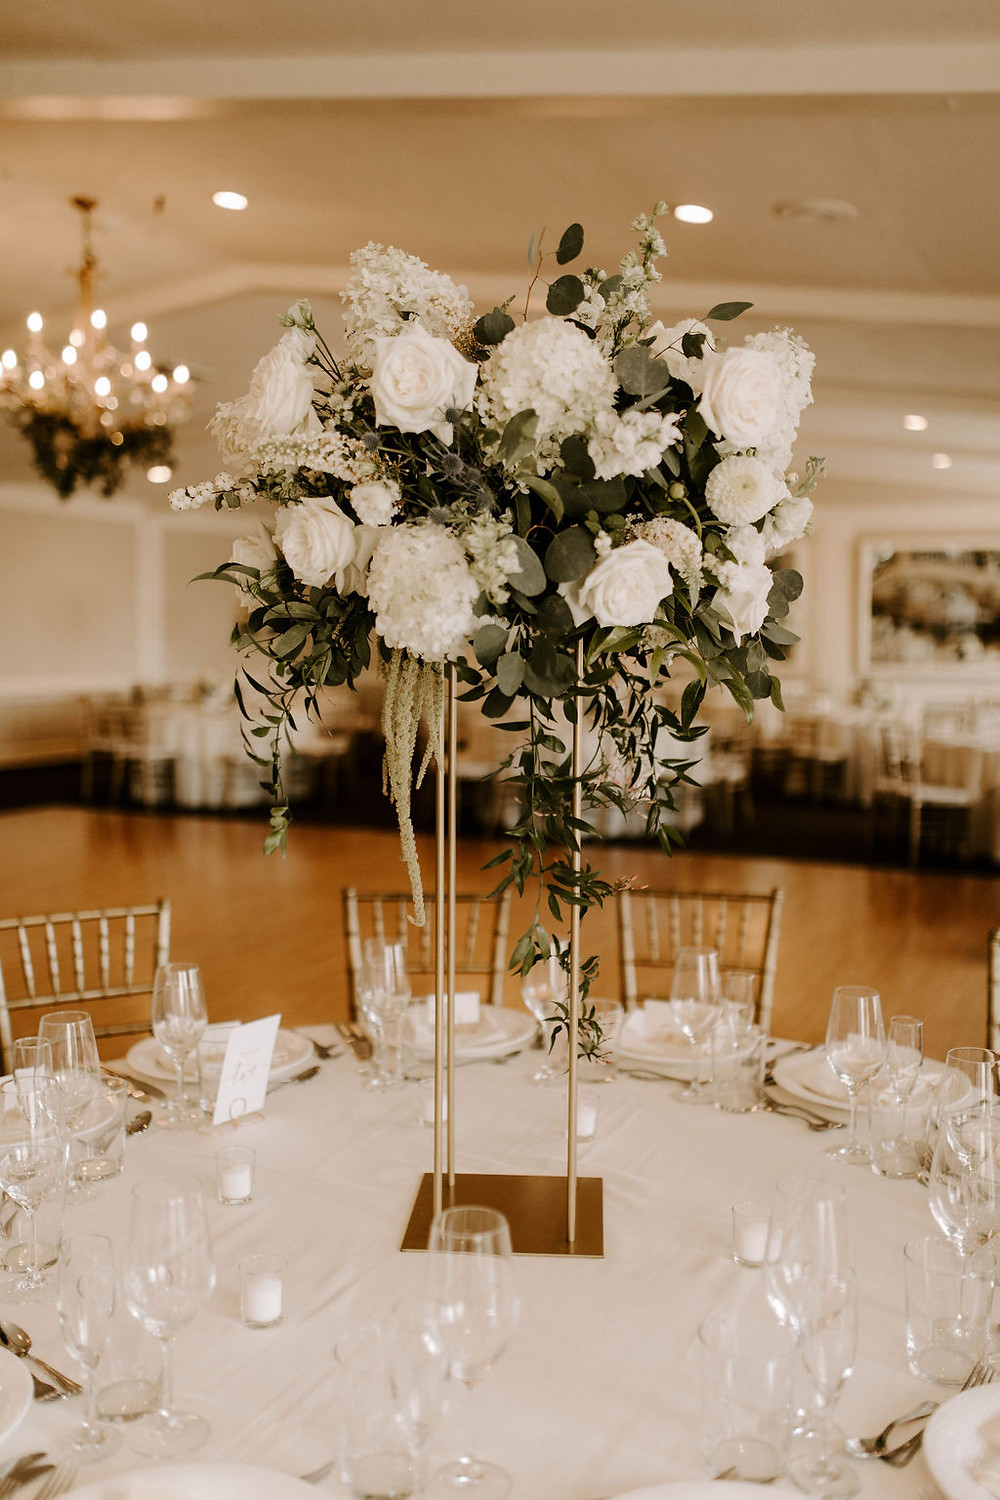 Tall centerpiece with white and greenery with natura style in gold stand at The Inn at Longshore